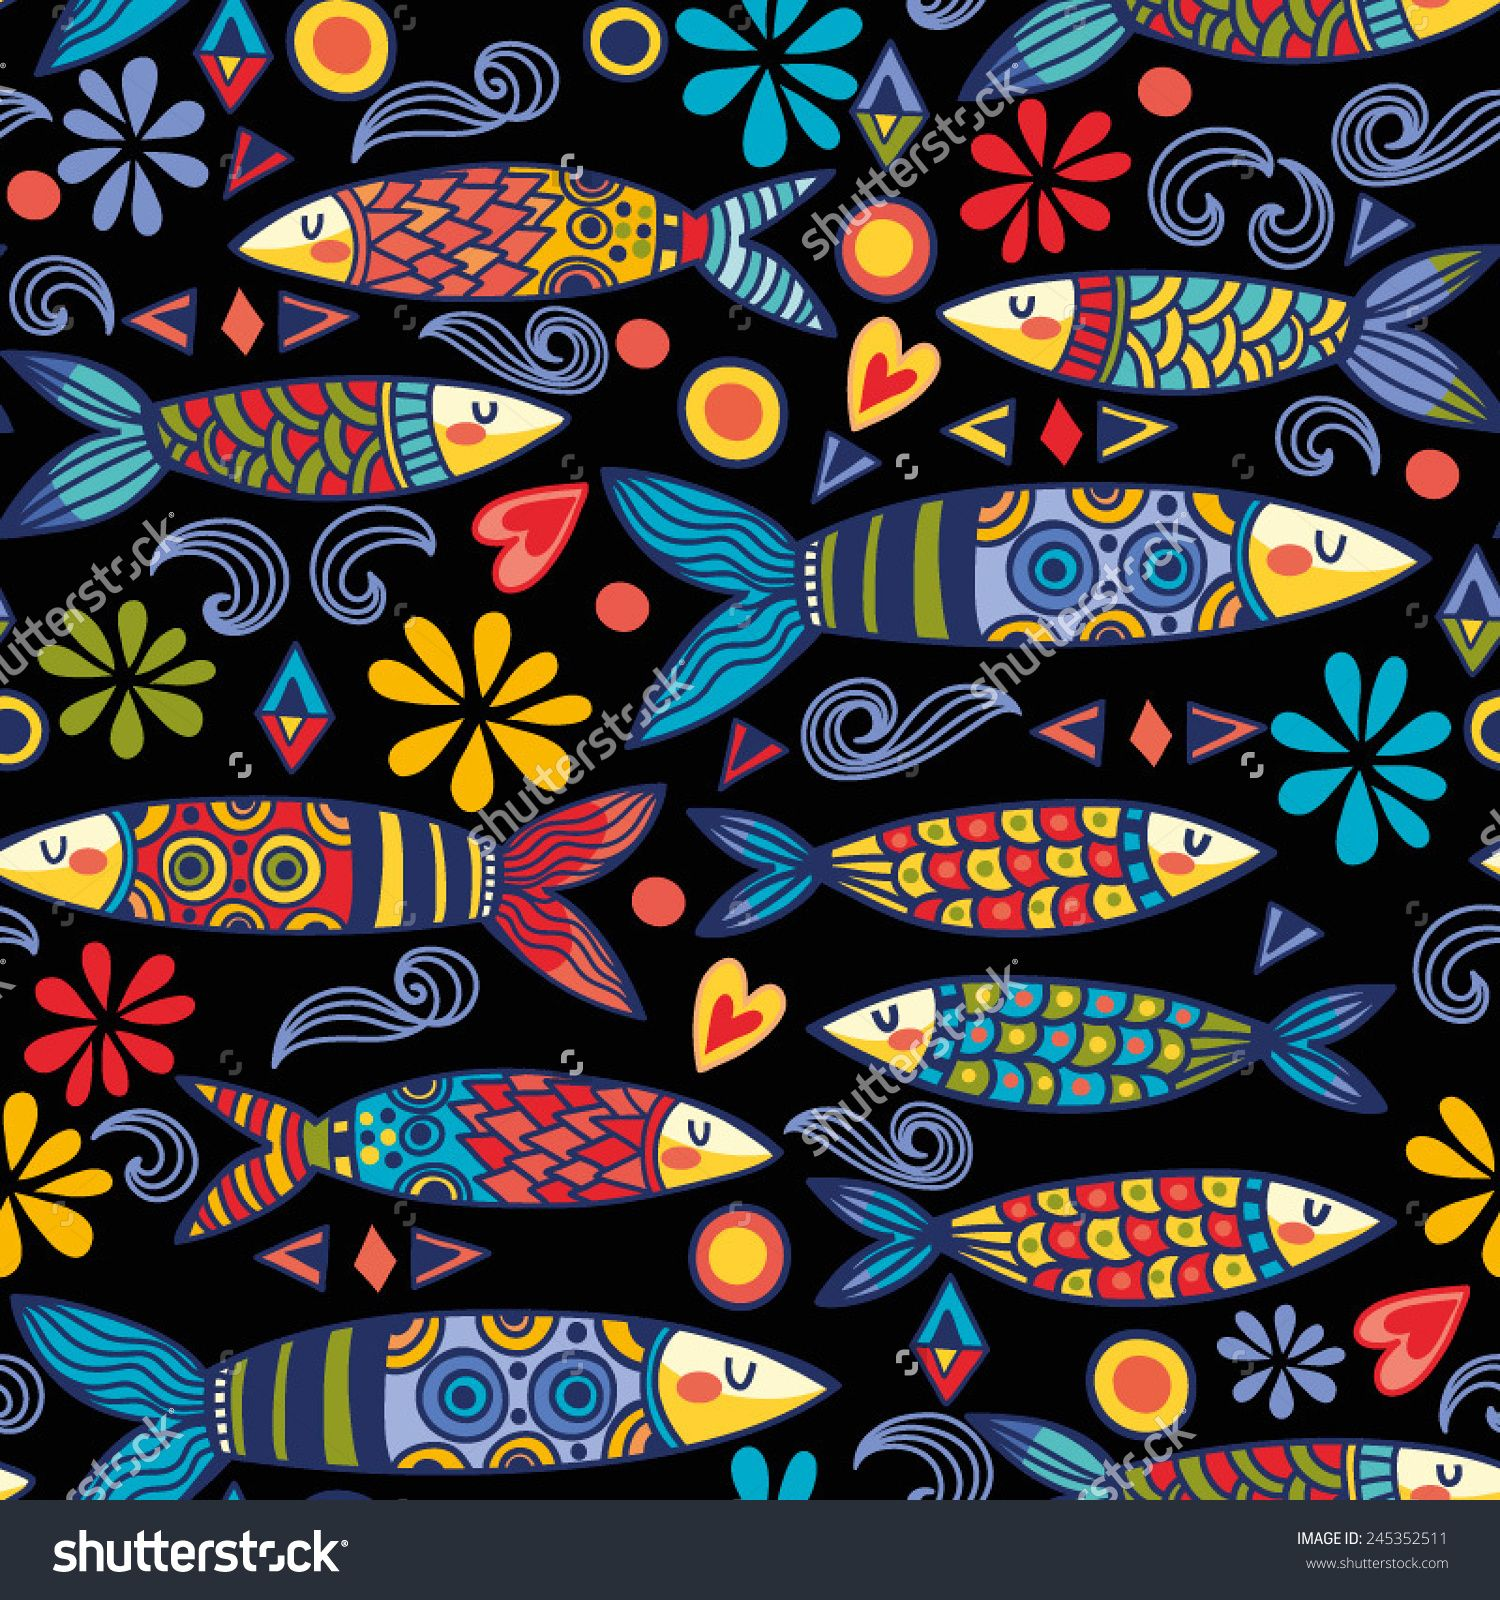 163702197 Bright and amazing Portugal pattern of ornamental sardines and graphic  elements.